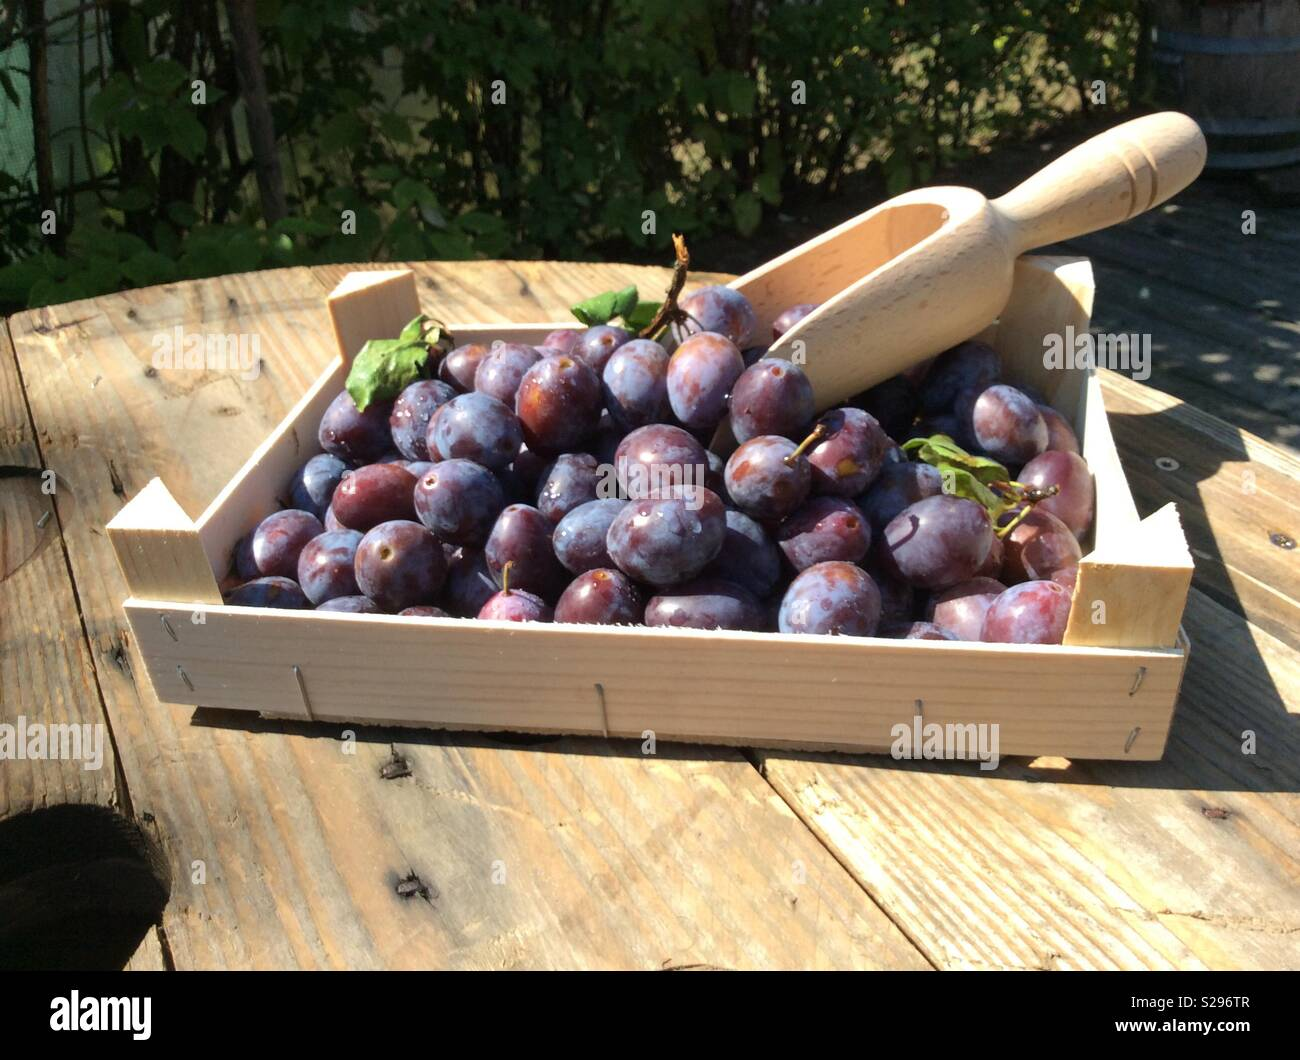 Freshly harvested plums and wooden scoop in wooden fruit crate - Stock Image